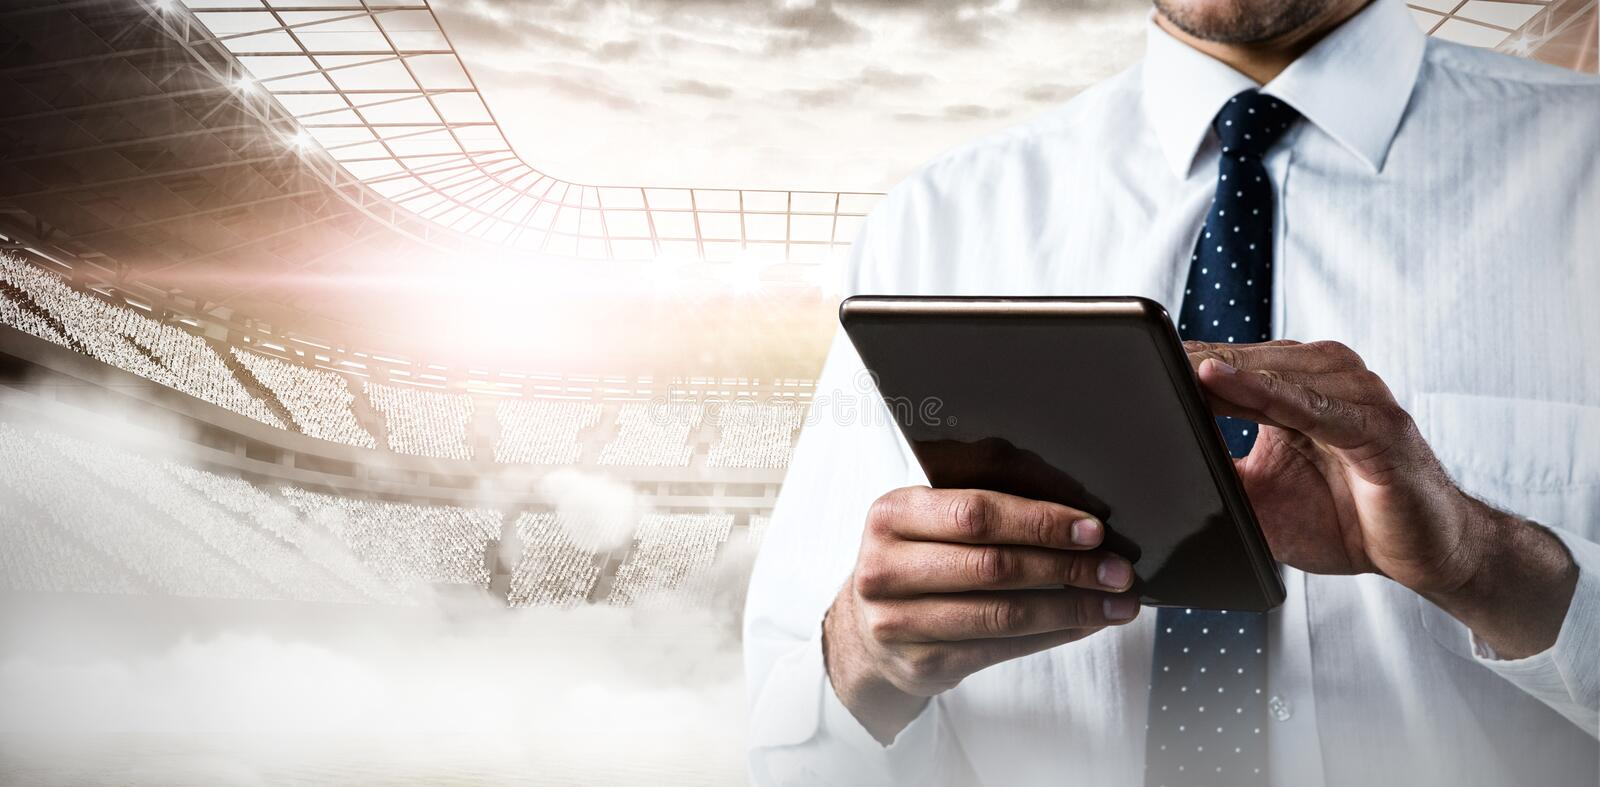 Composite image of upper mid-section of man using a tablet stock photo